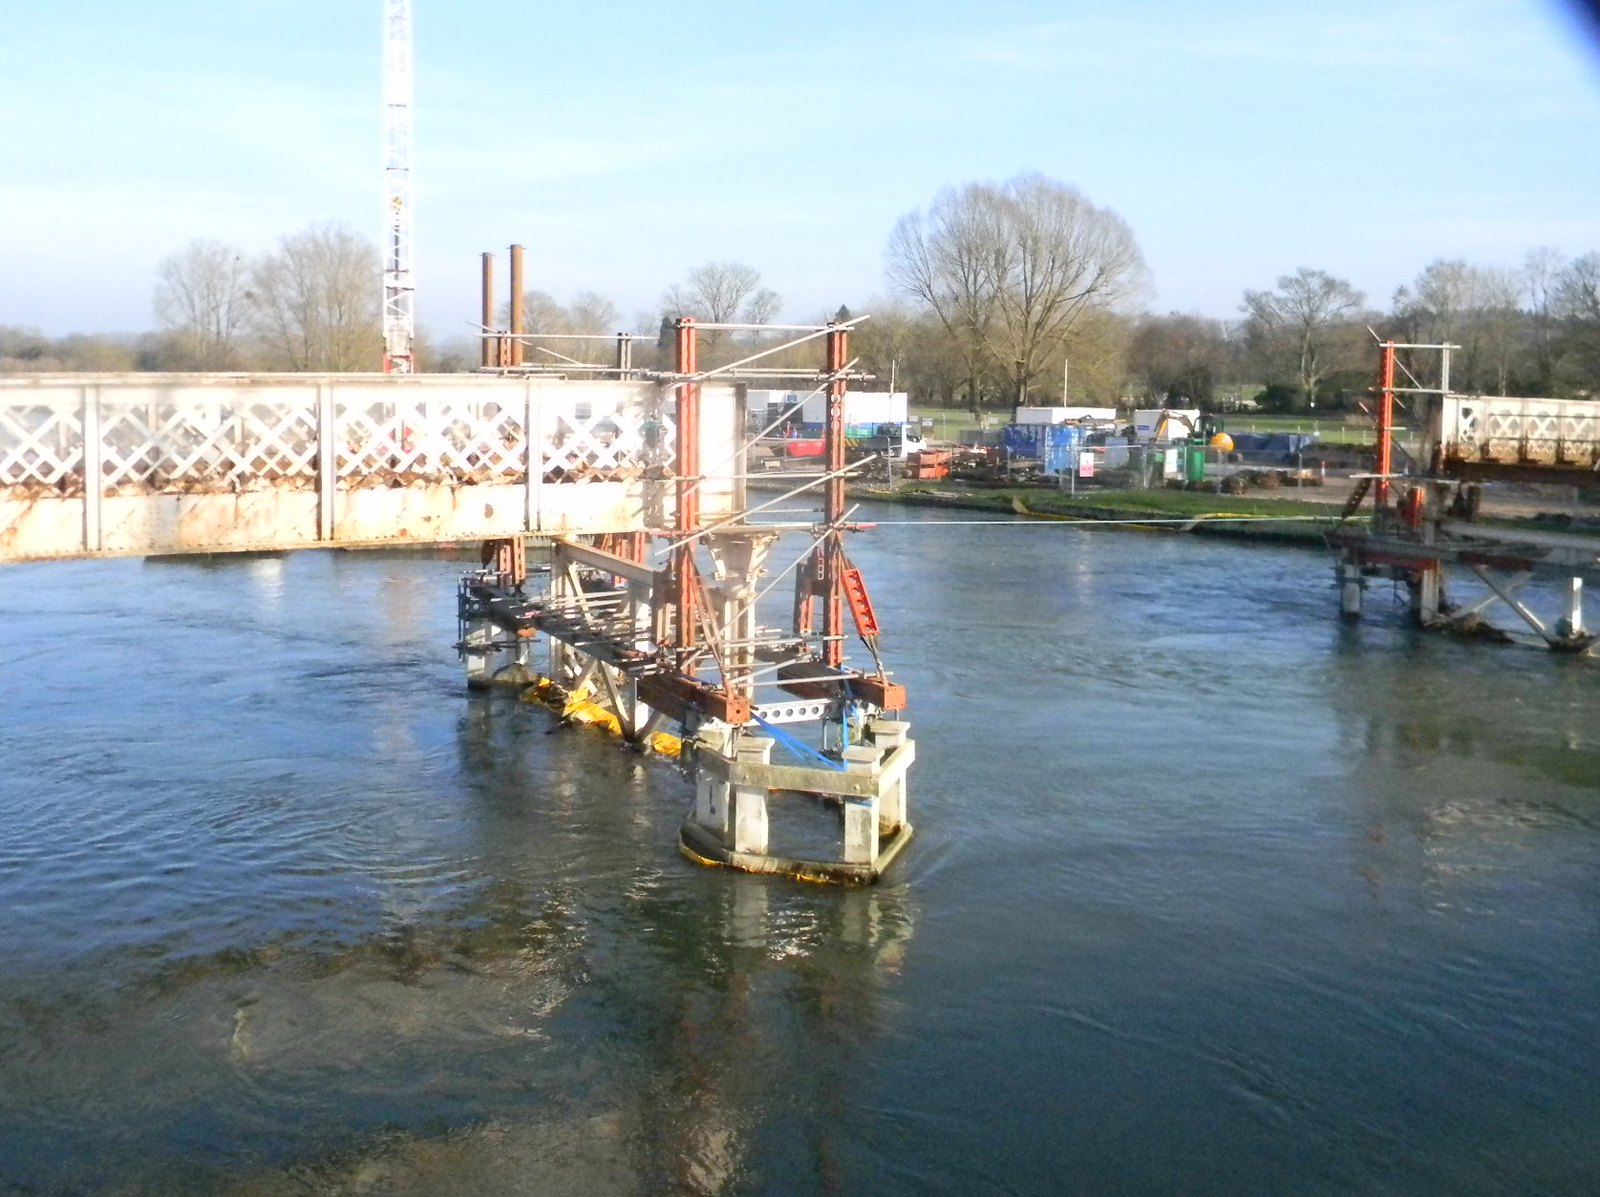 Whitchurch Toll Bridge Under repair Pangbourne Circular